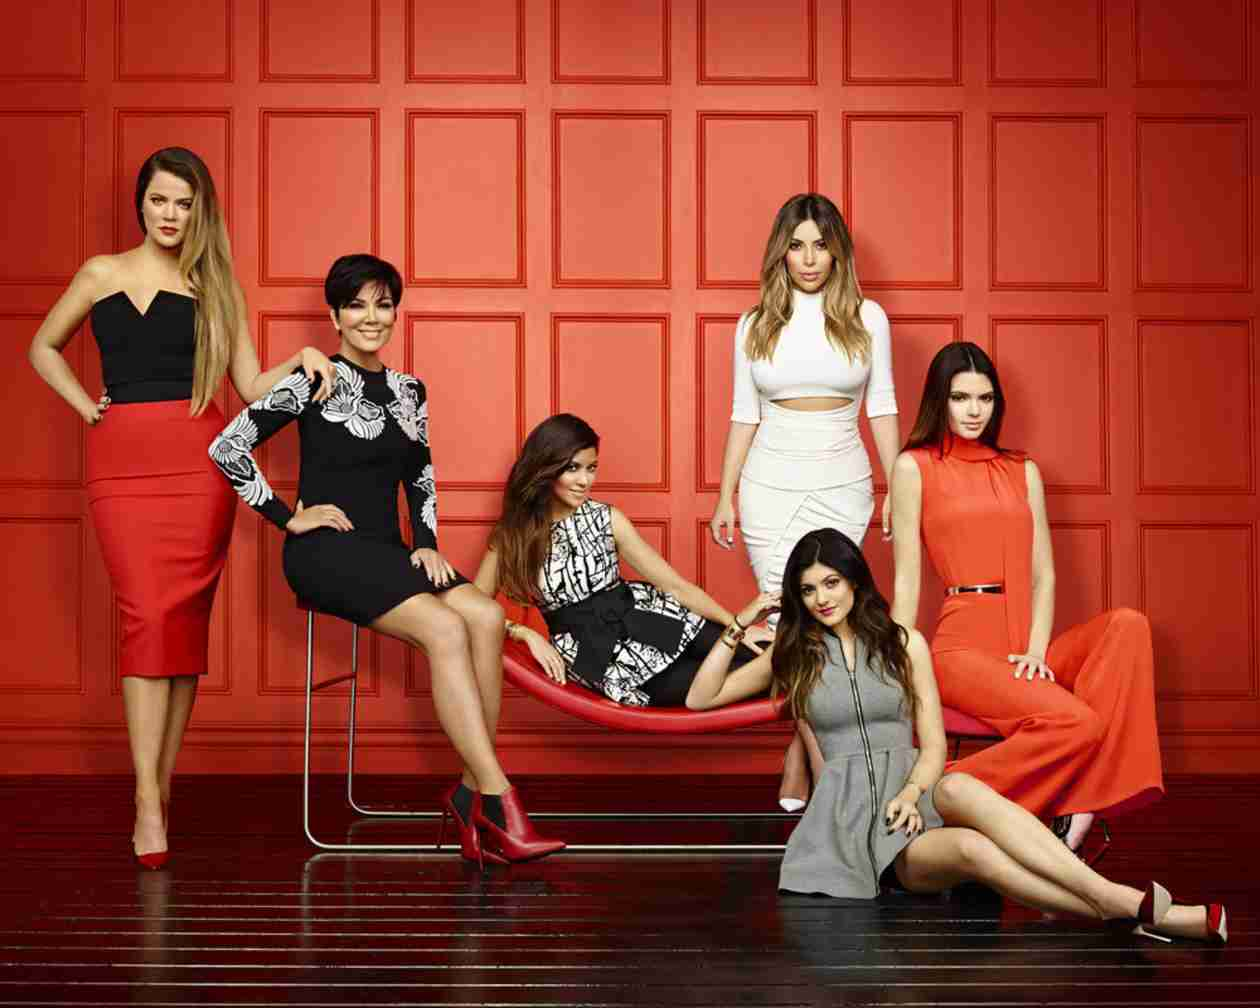 Kardashians Reportedly Sign New 3-Season Deal For More Than $40 Million